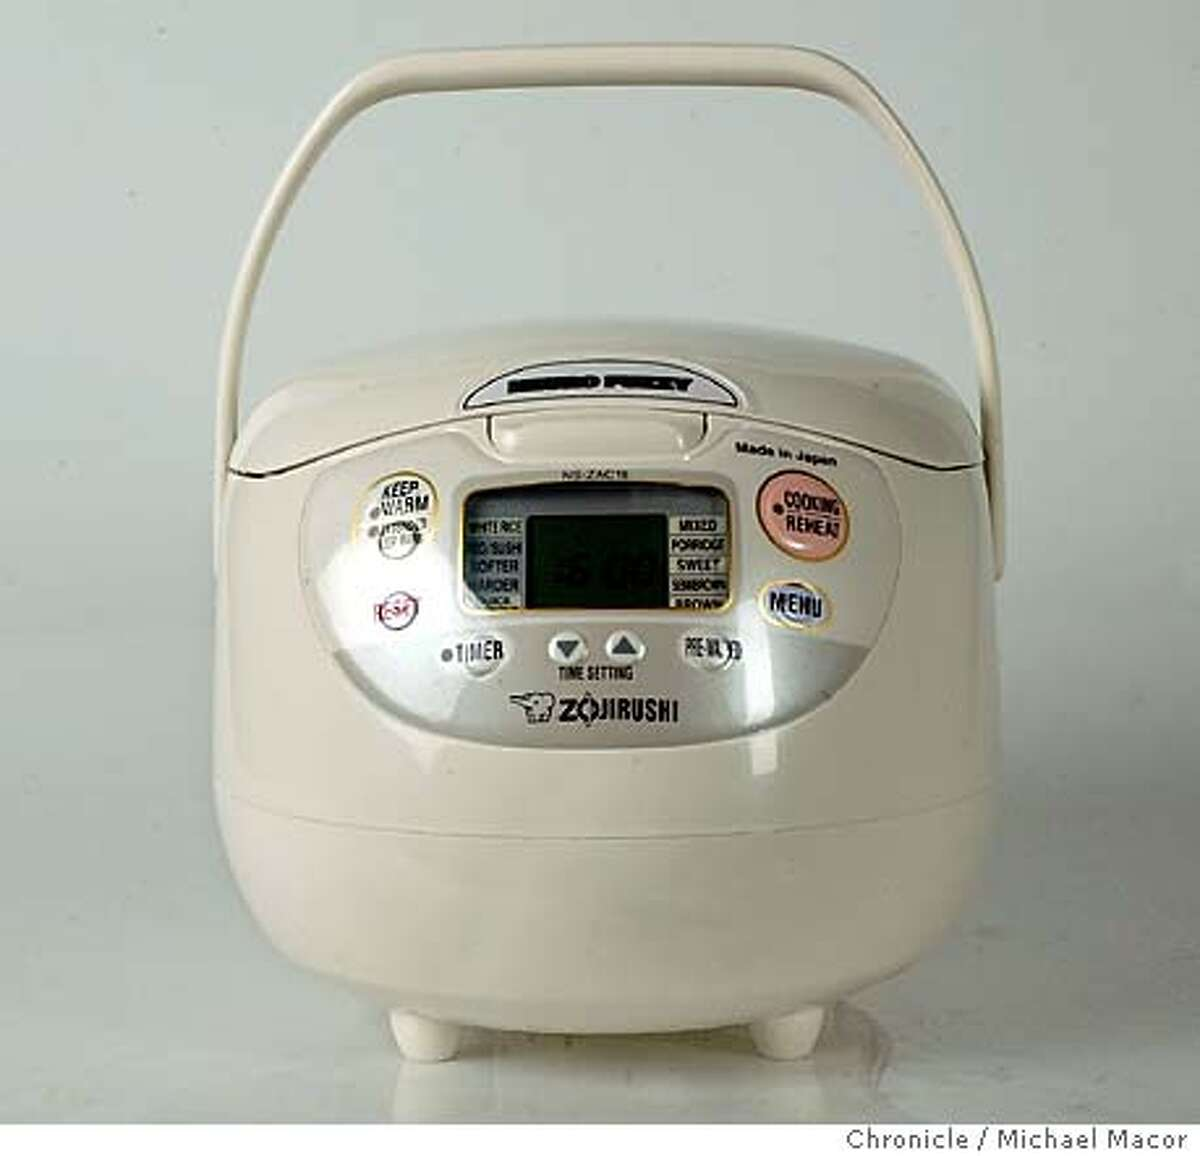 """ricecooker076_mac.jpg """" Zojirushi"""" Rice Cooker. Testing rice cookers. Looking at three different models. 11/12/03 in STUDIO. MICHAEL MACOR/ The Chronicle"""